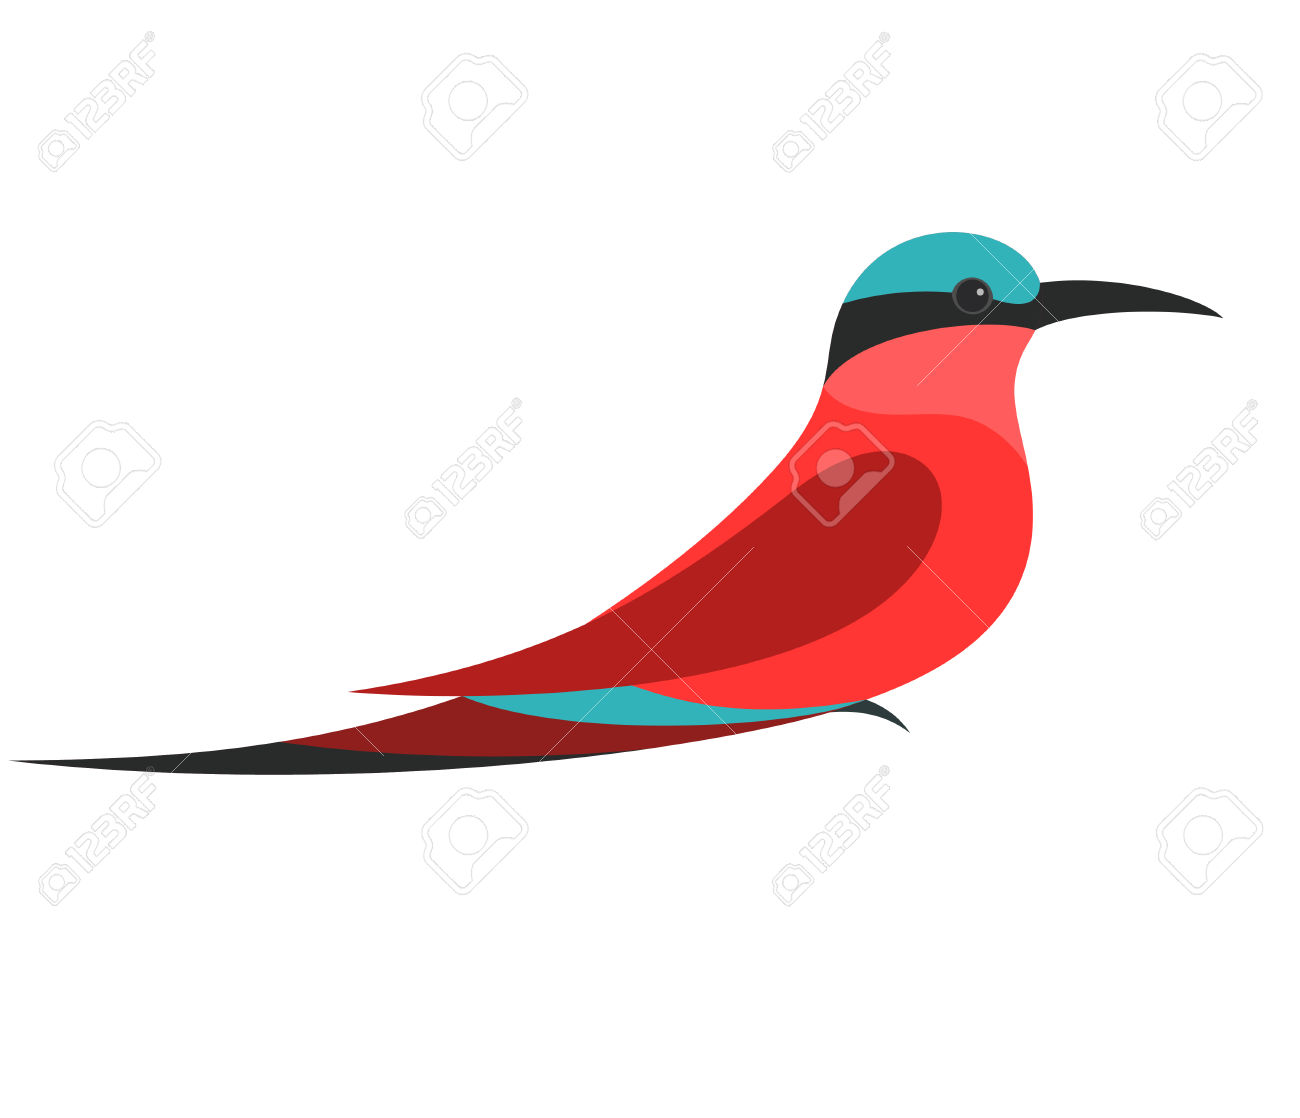 Bee-eater clipart #11, Download drawings